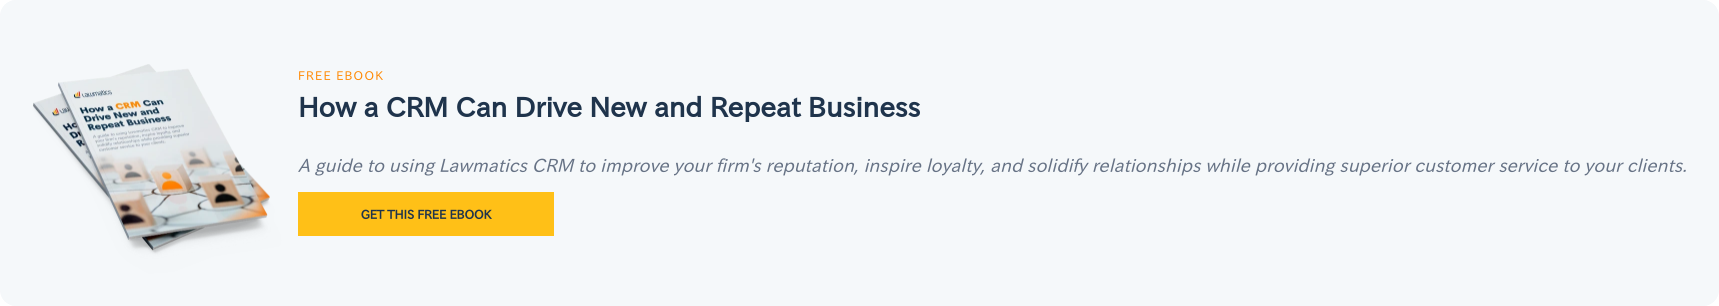 Free eBook  How a CRM Can Drive New and Repeat Business  A guide to using Lawmatics CRM to improve your firm's reputation, inspire  loyalty, and solidify relationships while providing superior customer service  to your clients. Get this free ebook